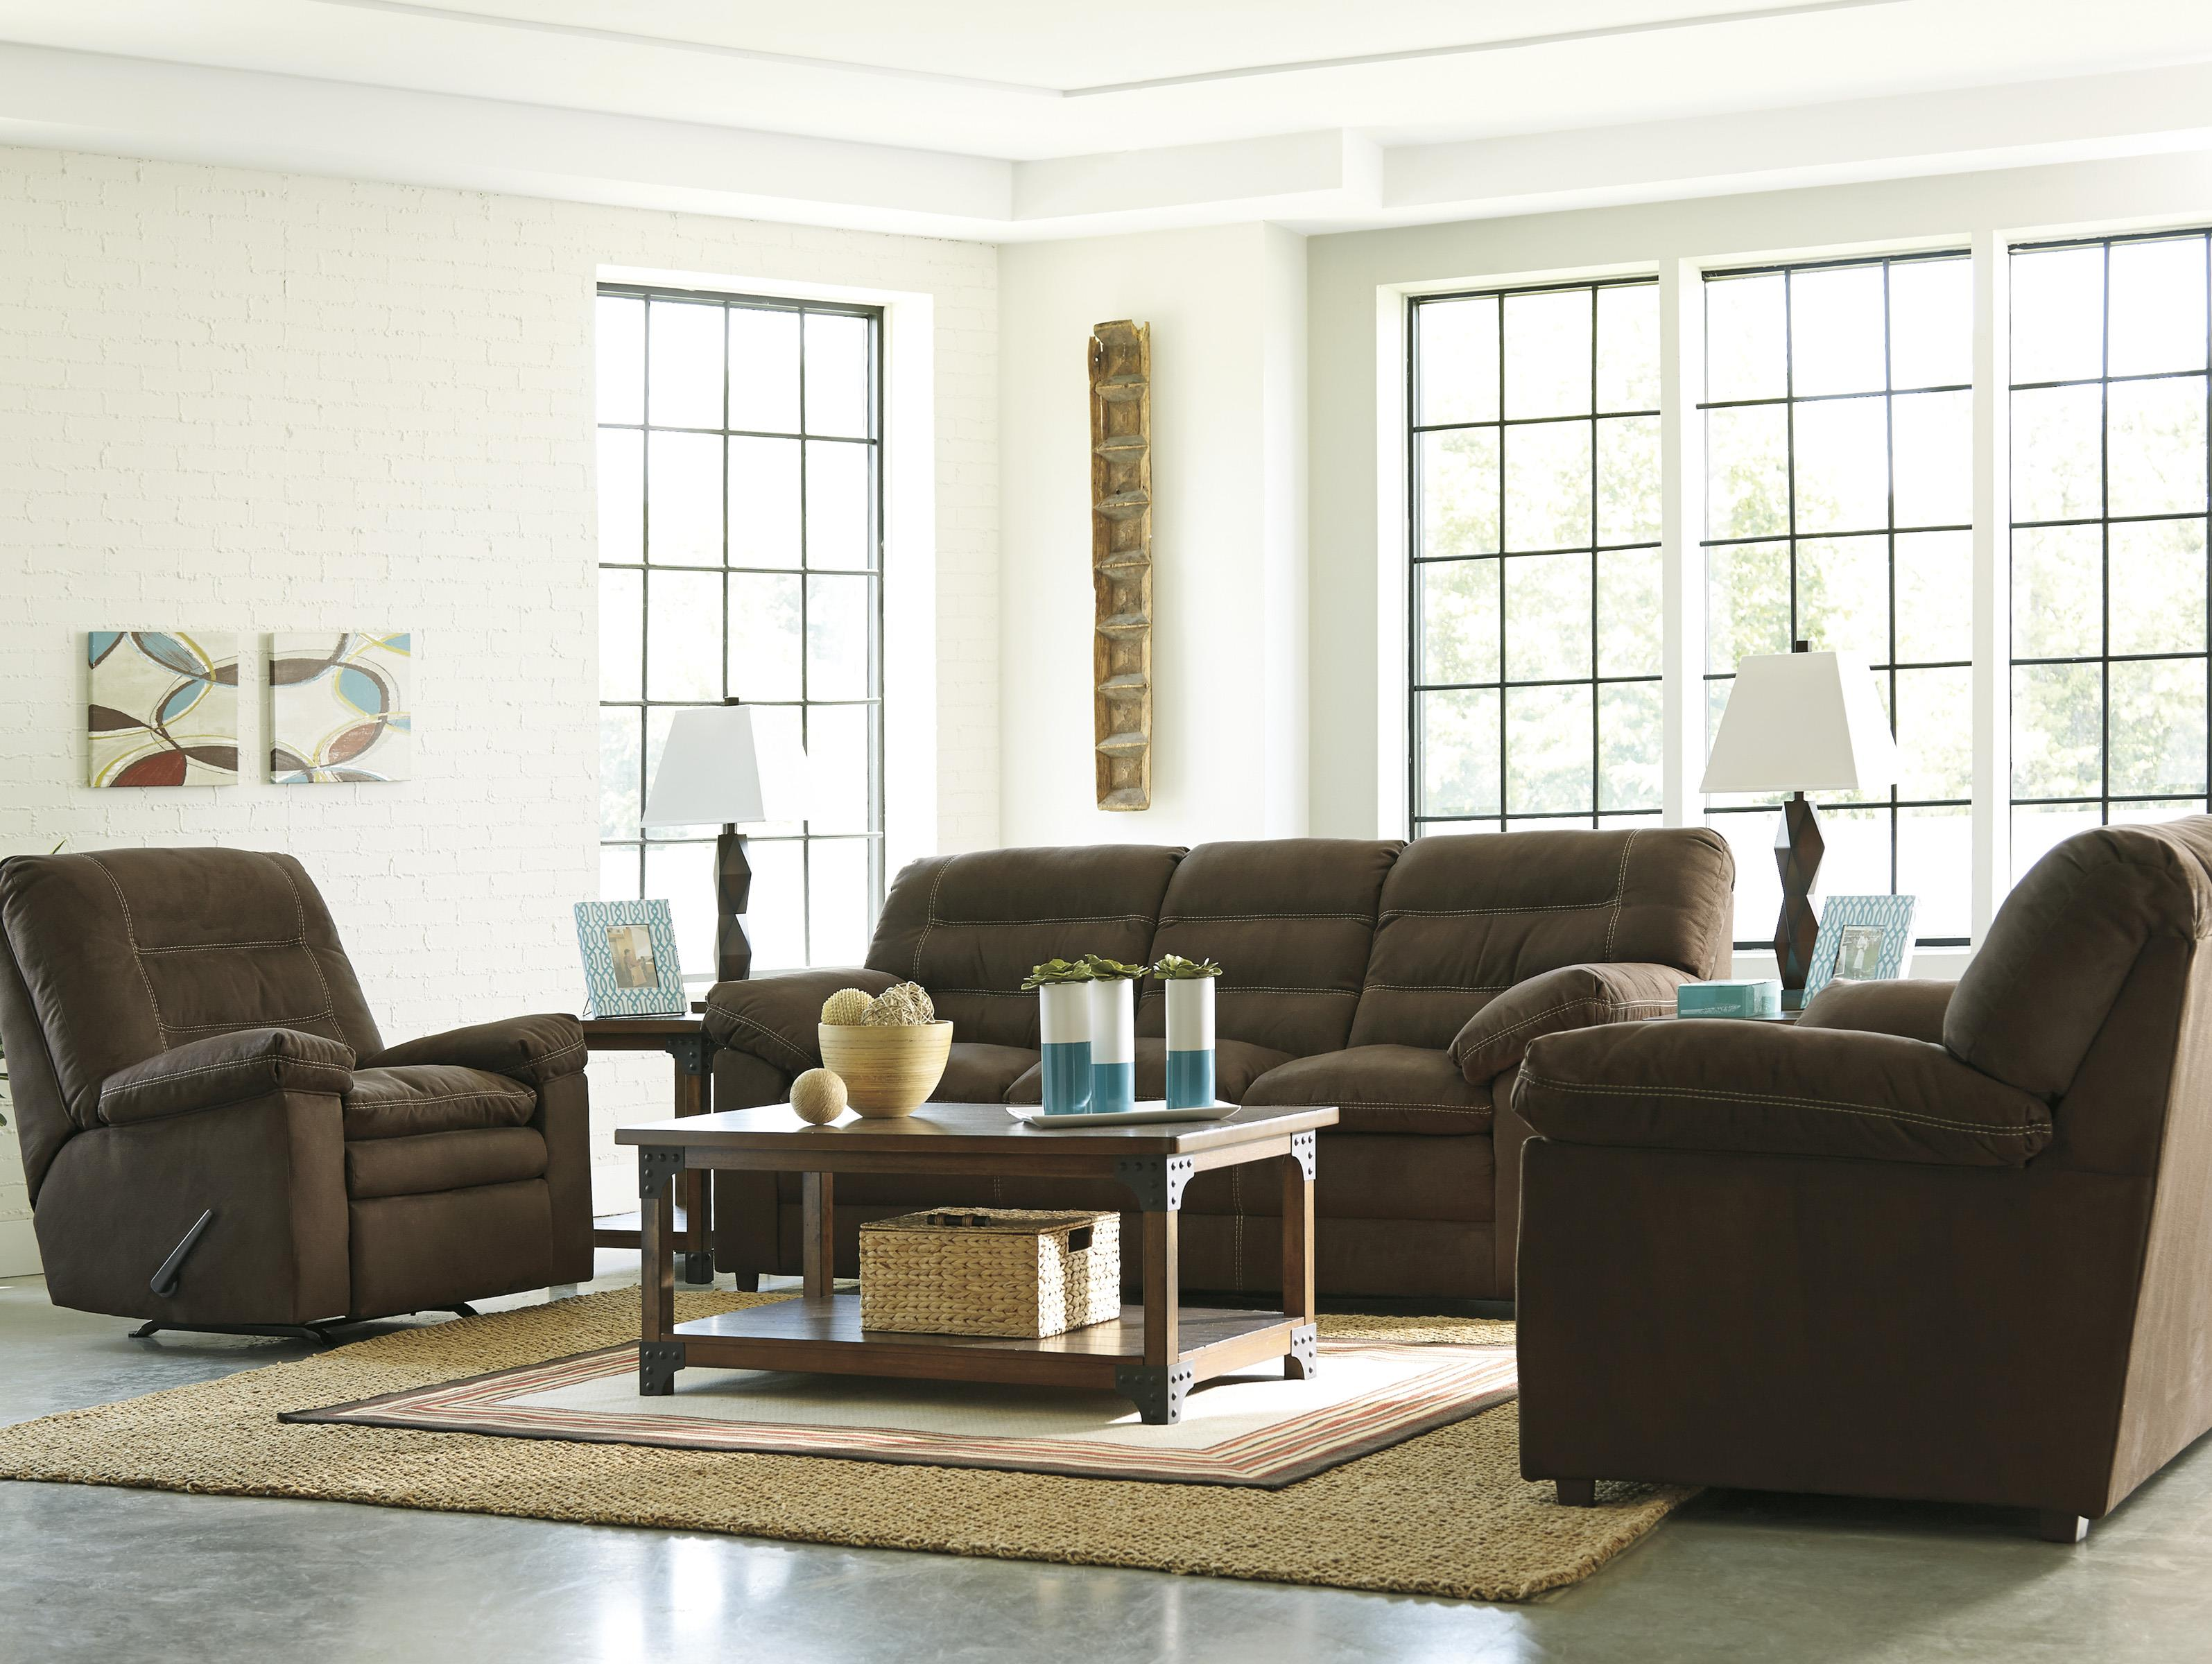 Benchcraft Talut Stationary Living Room Group - Item Number: 29900 Living Room Group 2